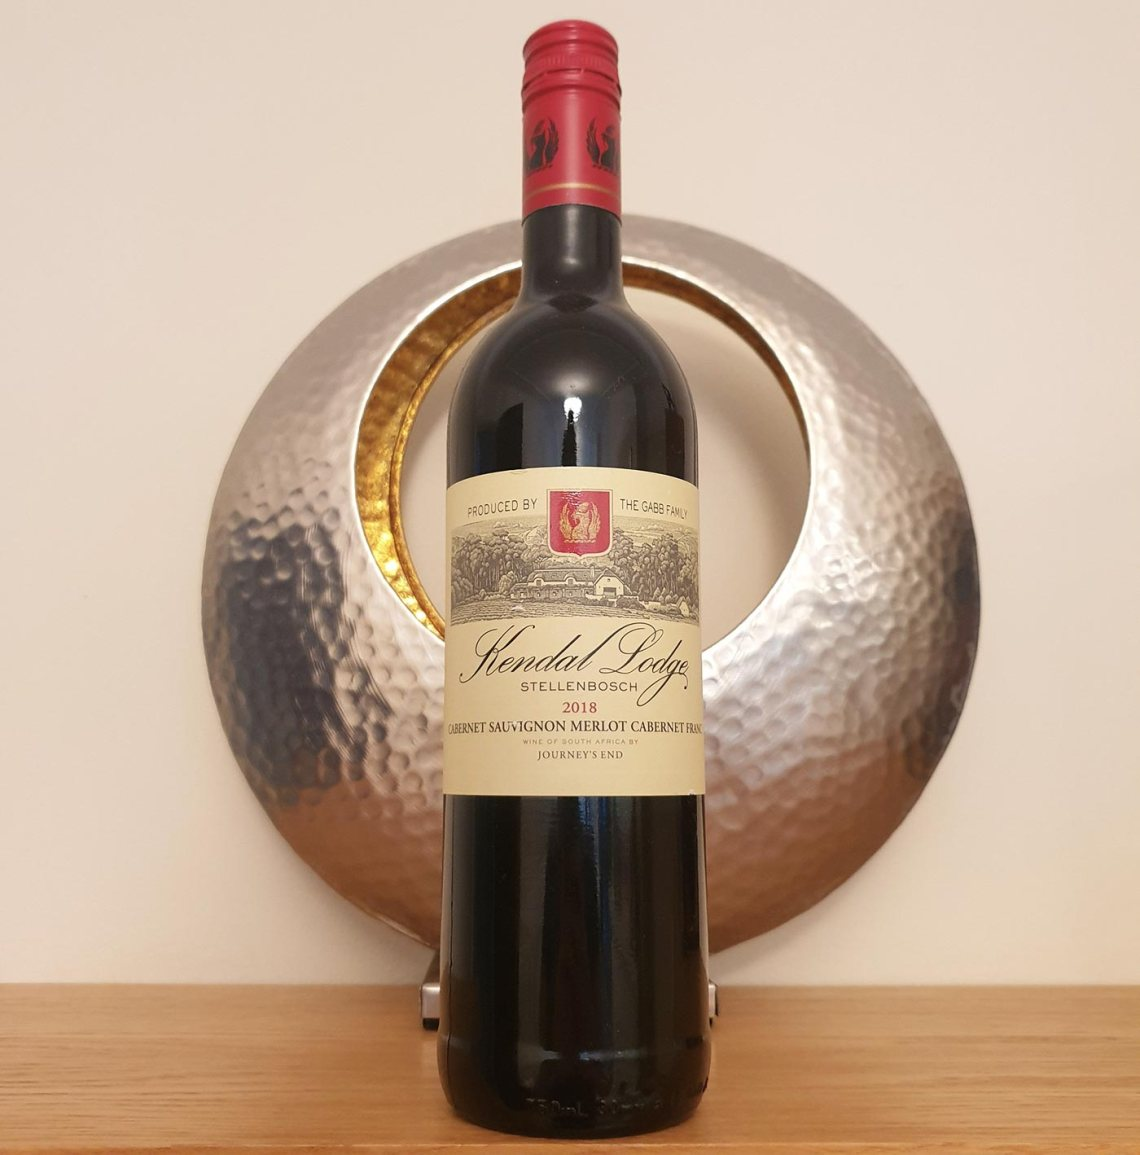 Bottle of Kendal Lodge red wine in front of a round metallic candle holder.